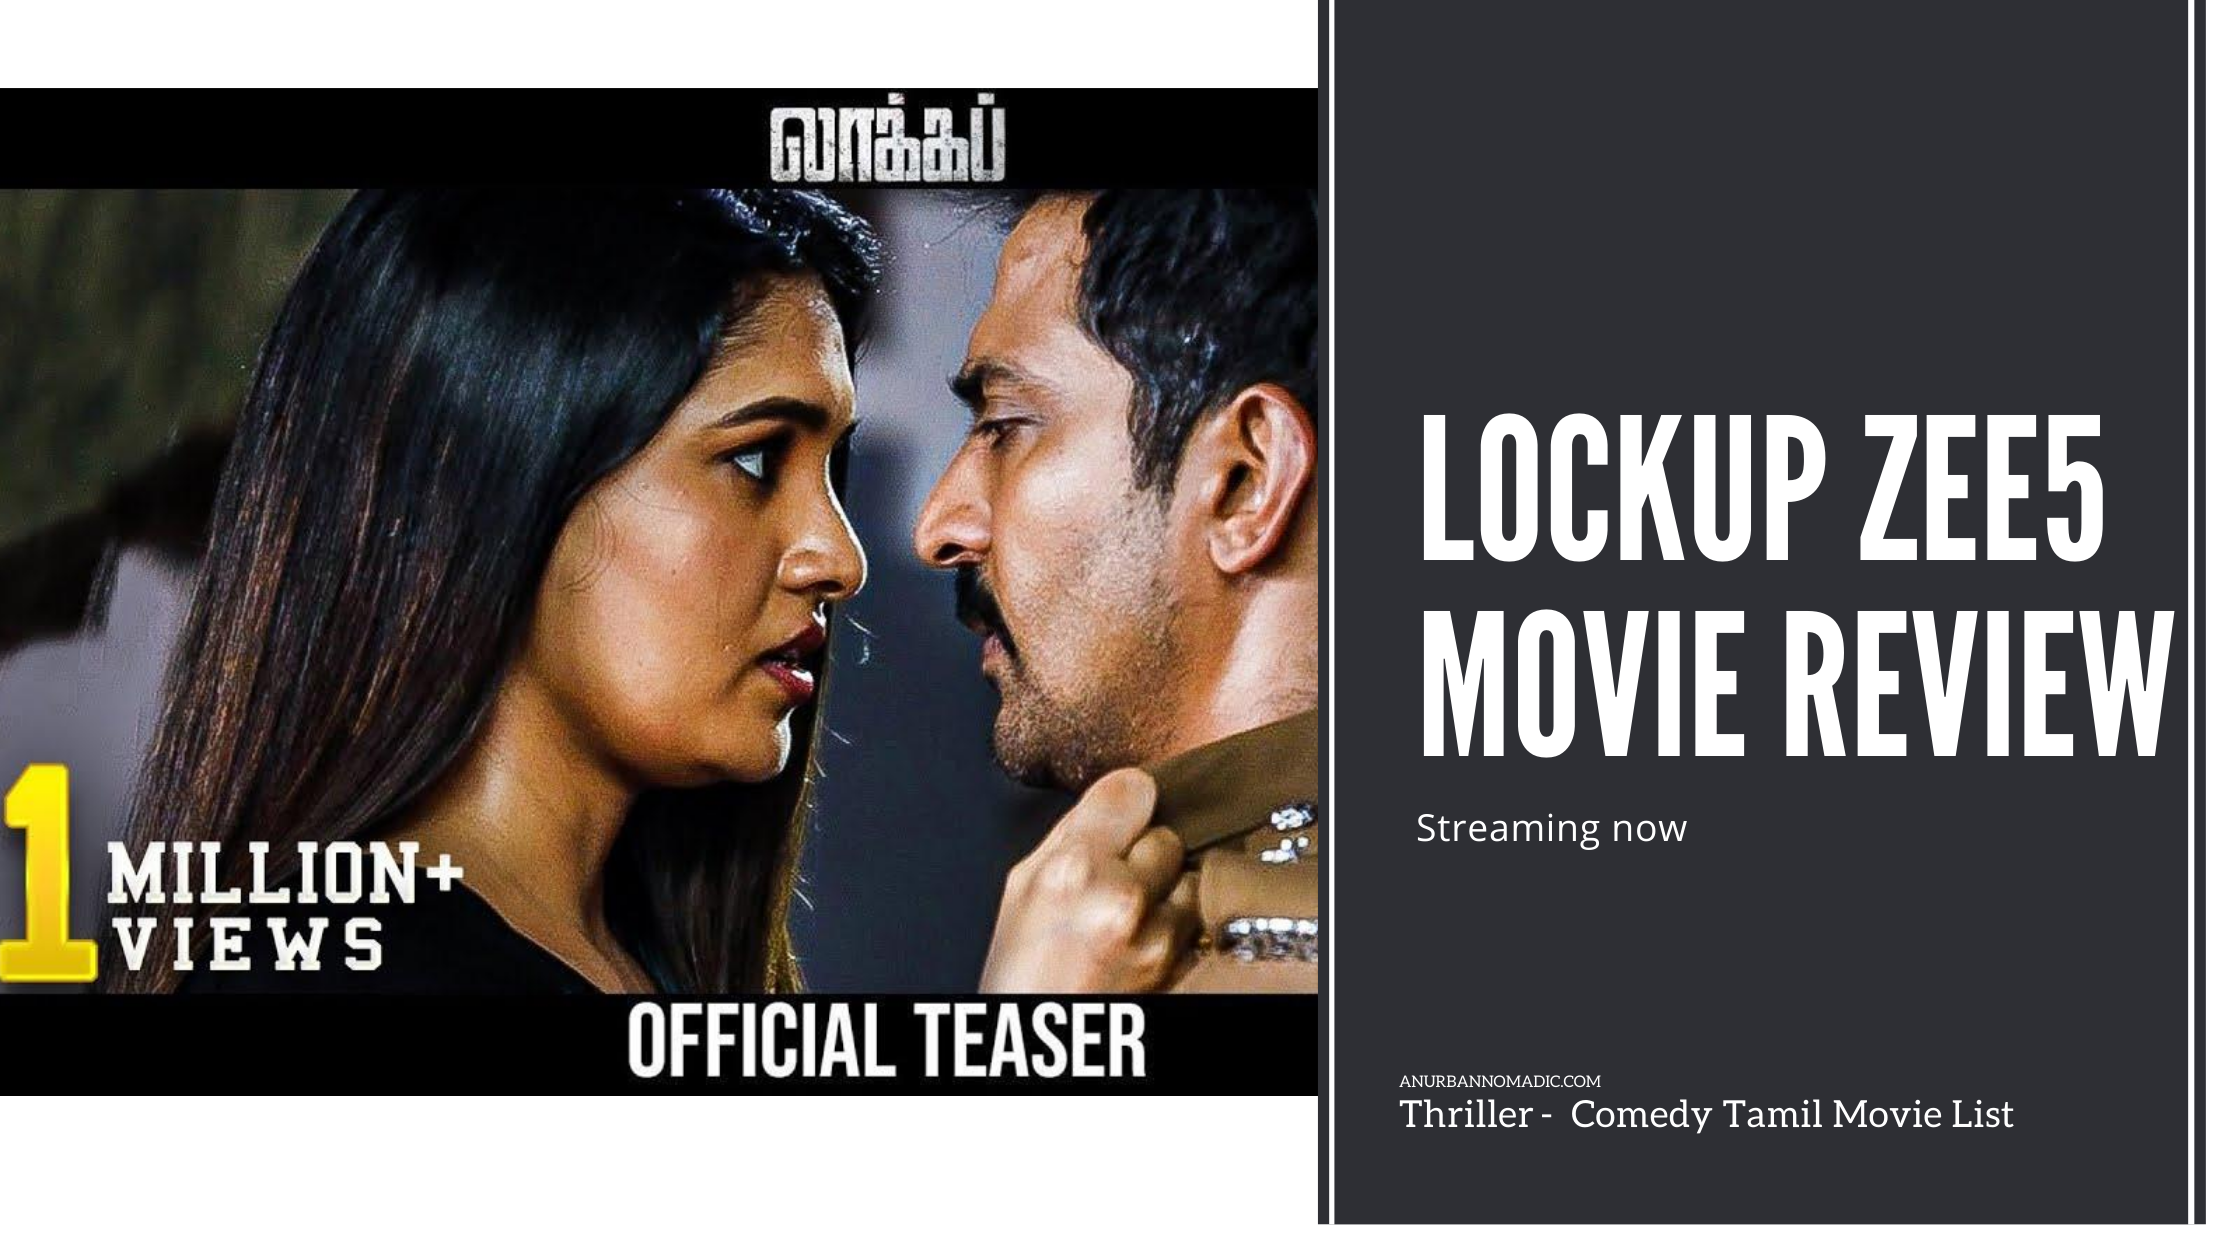 Lockup ZEE5 Tamil Comedy Movie List Streaming now Review